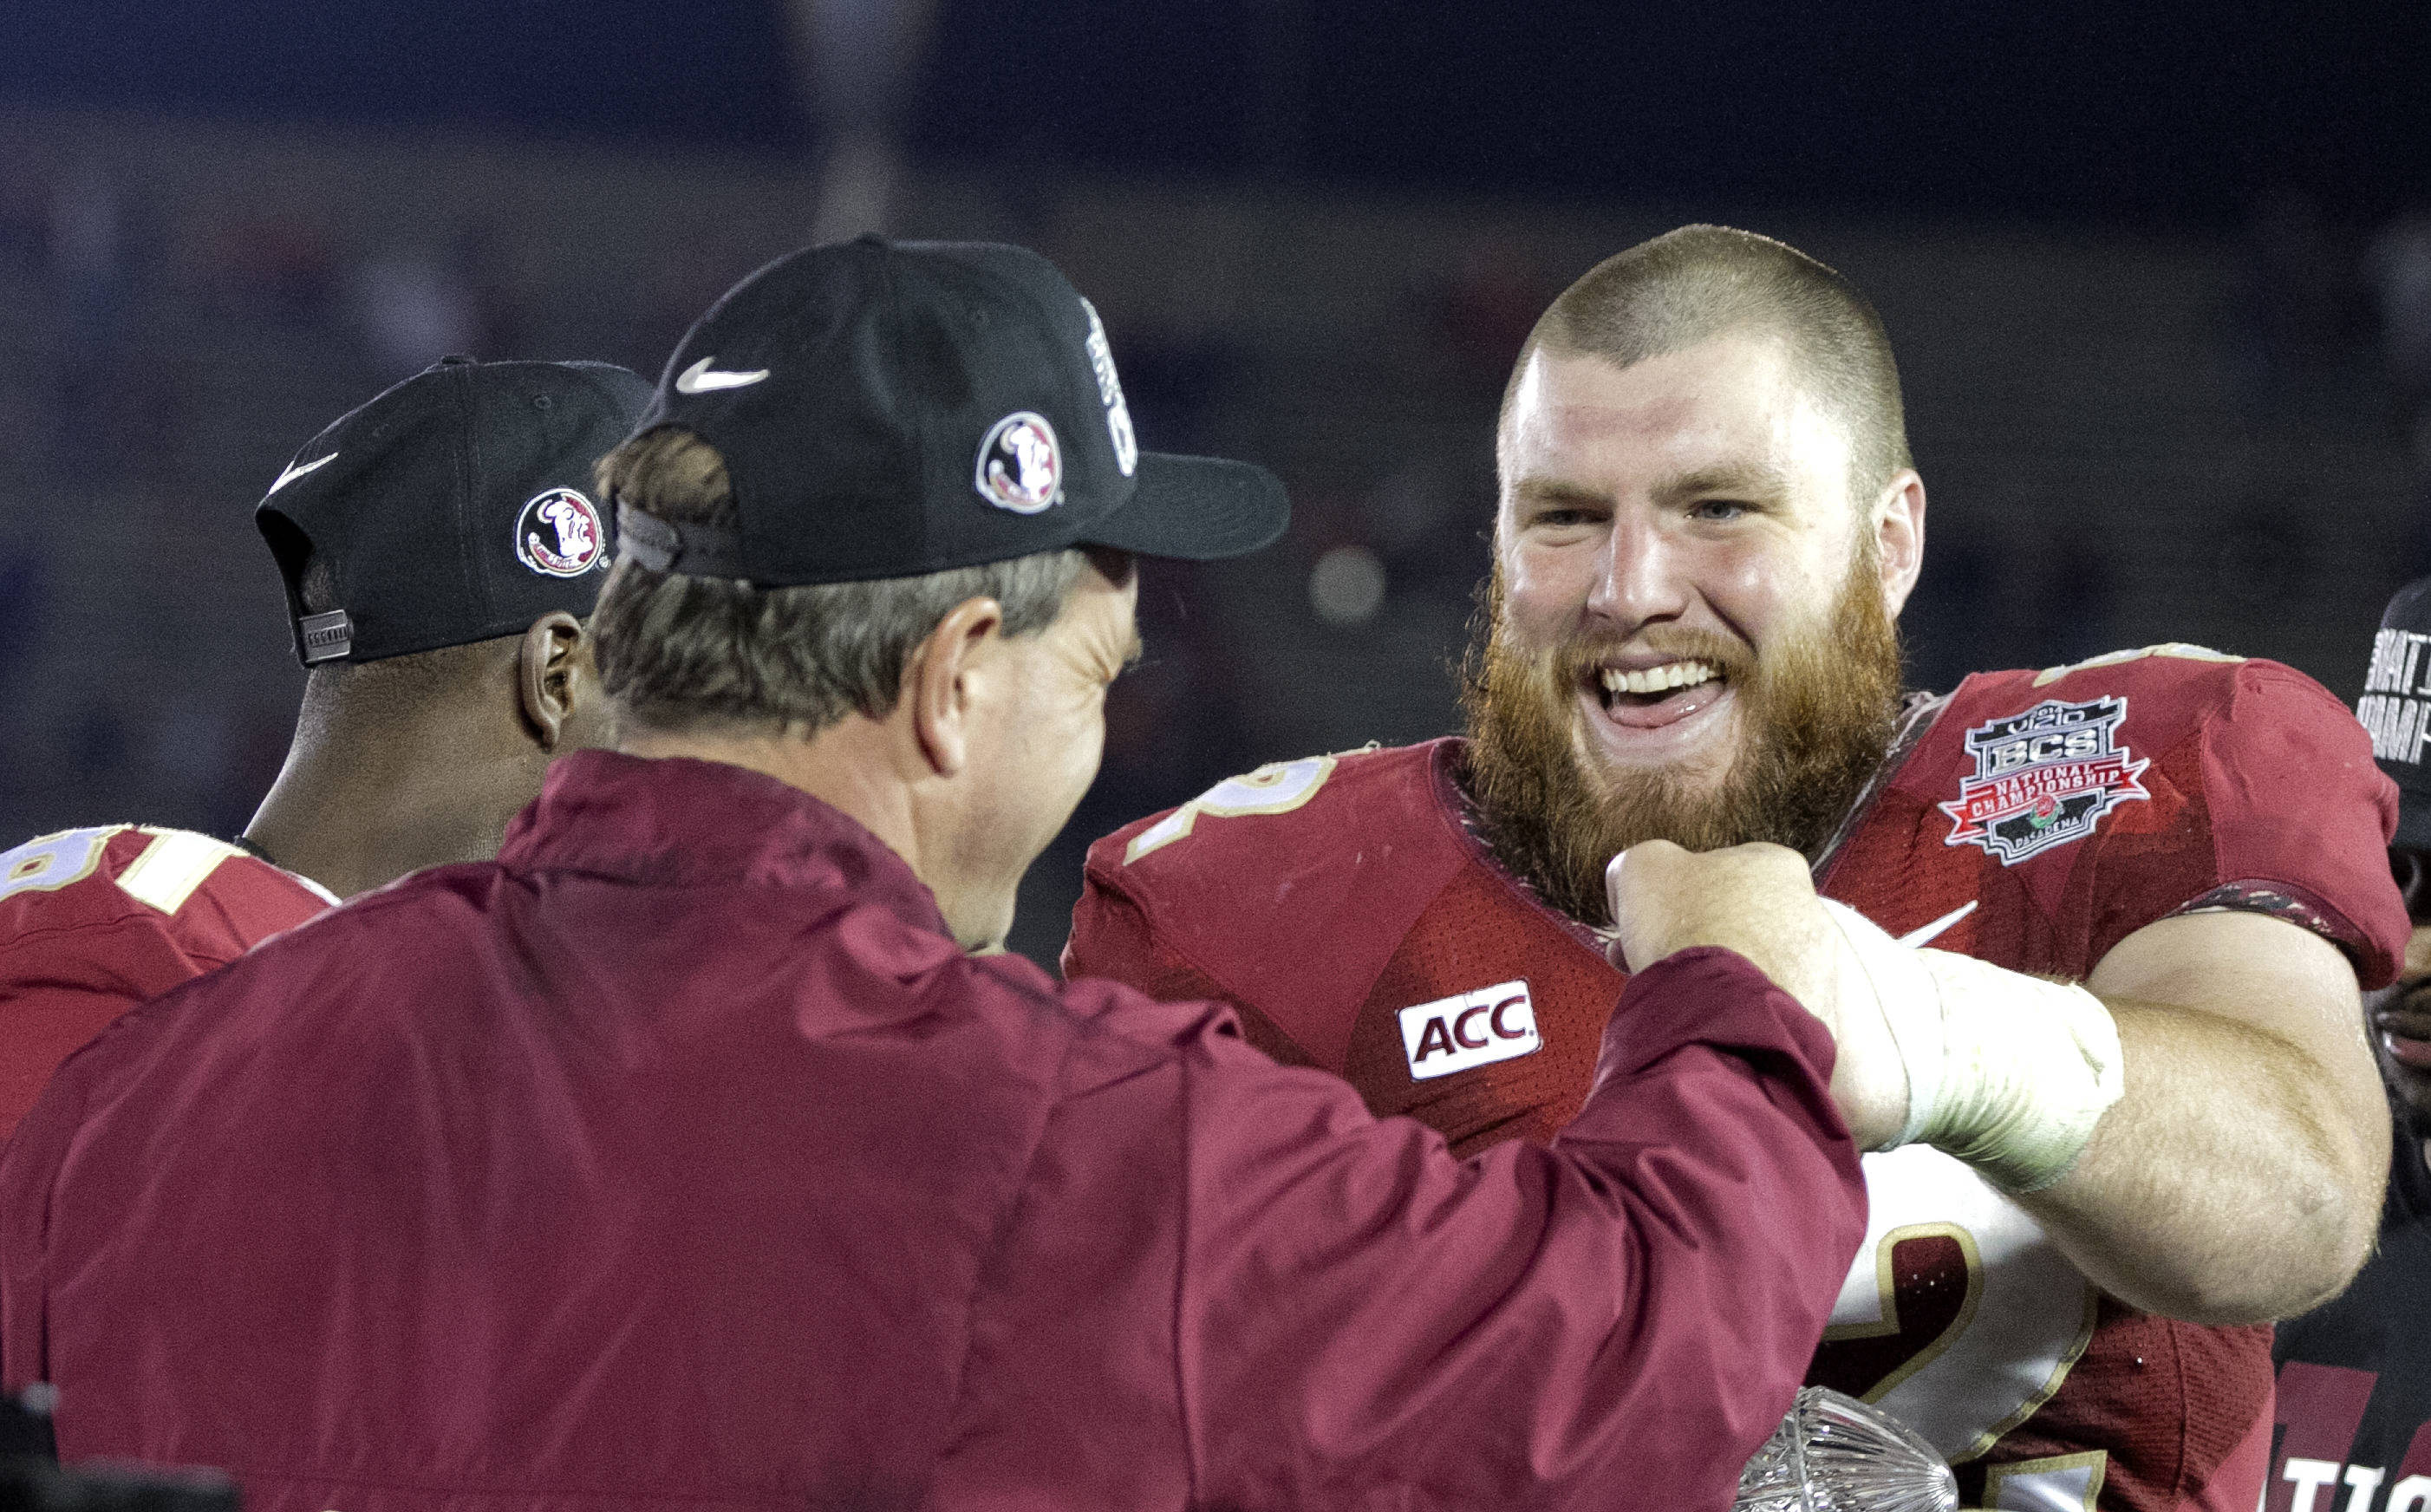 Coach Fisher and All-American Center Brian Stork share a fist pump, BCS Championship, FSU vs Auburn, Rose Bowl, Pasadena, CA,  1-06-14,  (Photo by Steve Musco)